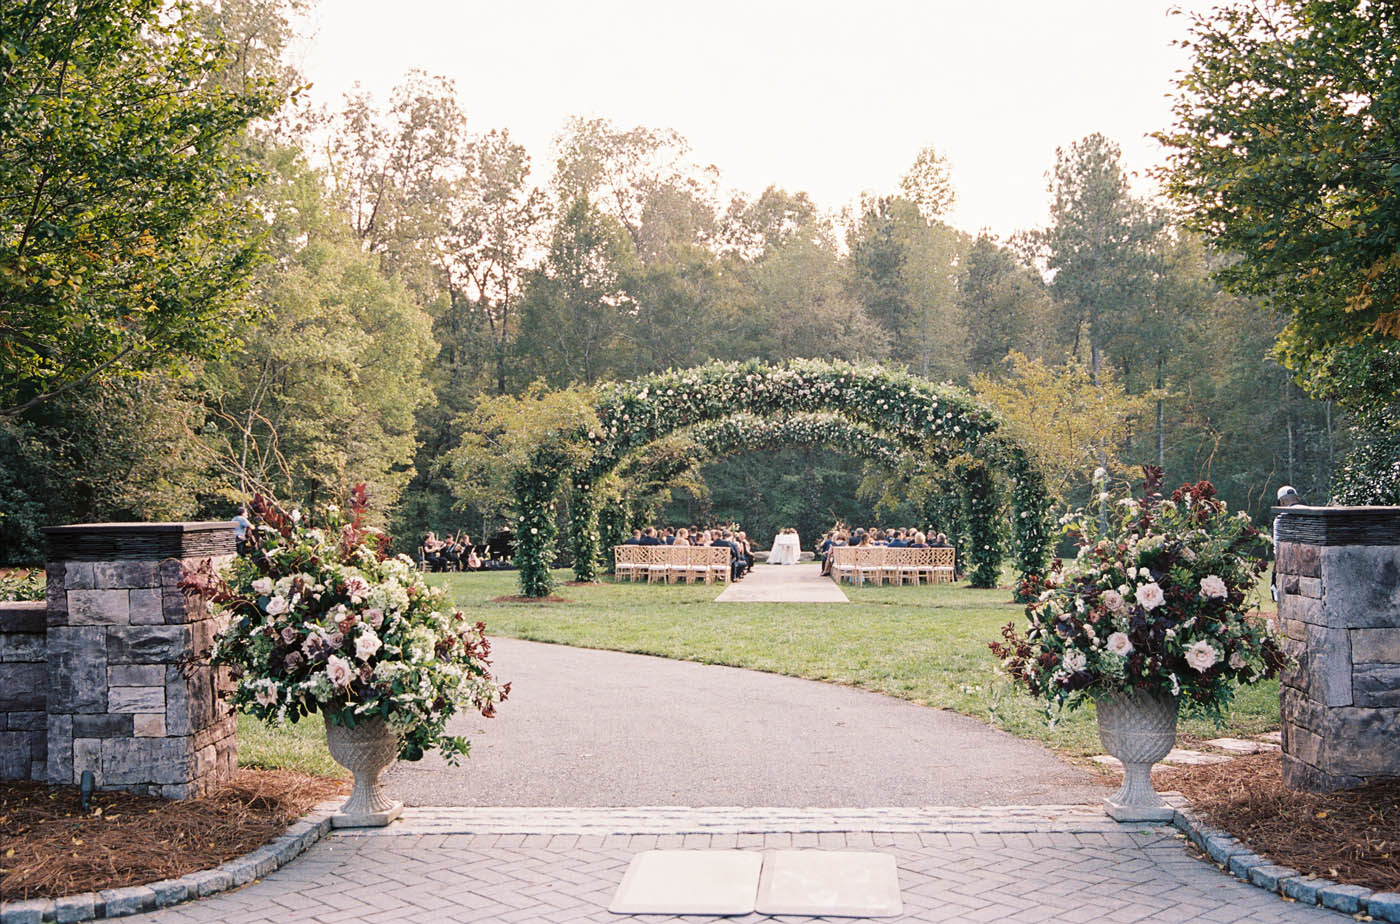 Private-estate-wedding-North-Carolina-12.jpg